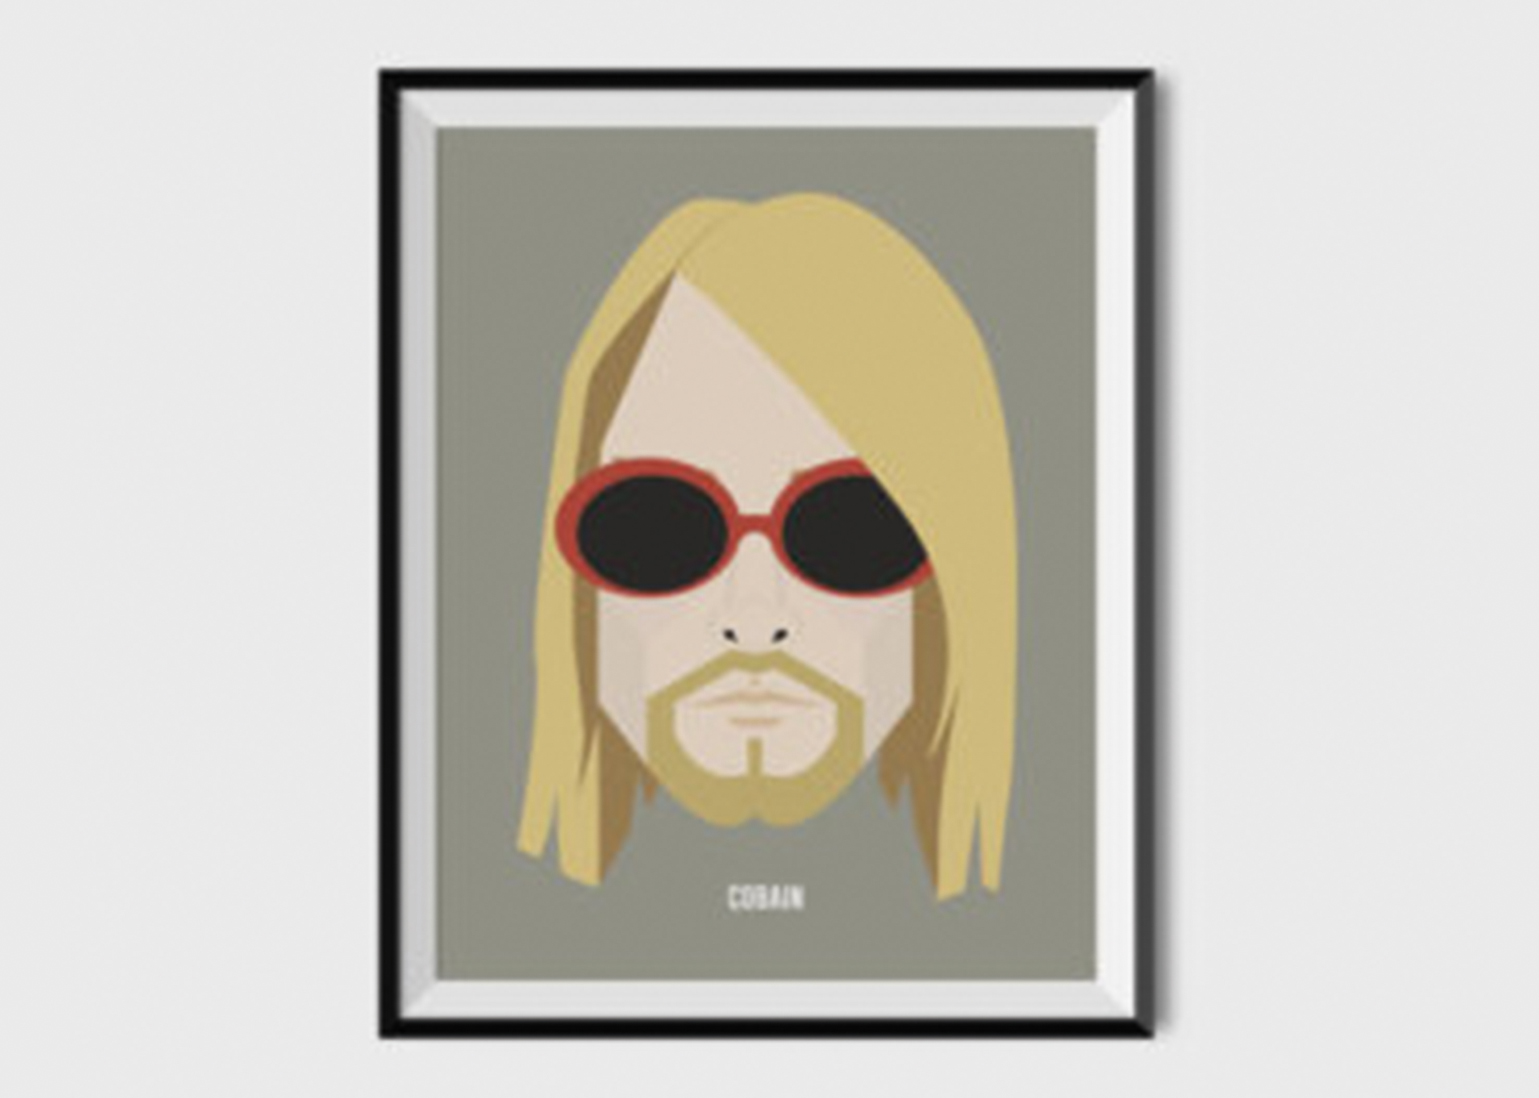 deliver a high resolution poster of kurt cobain